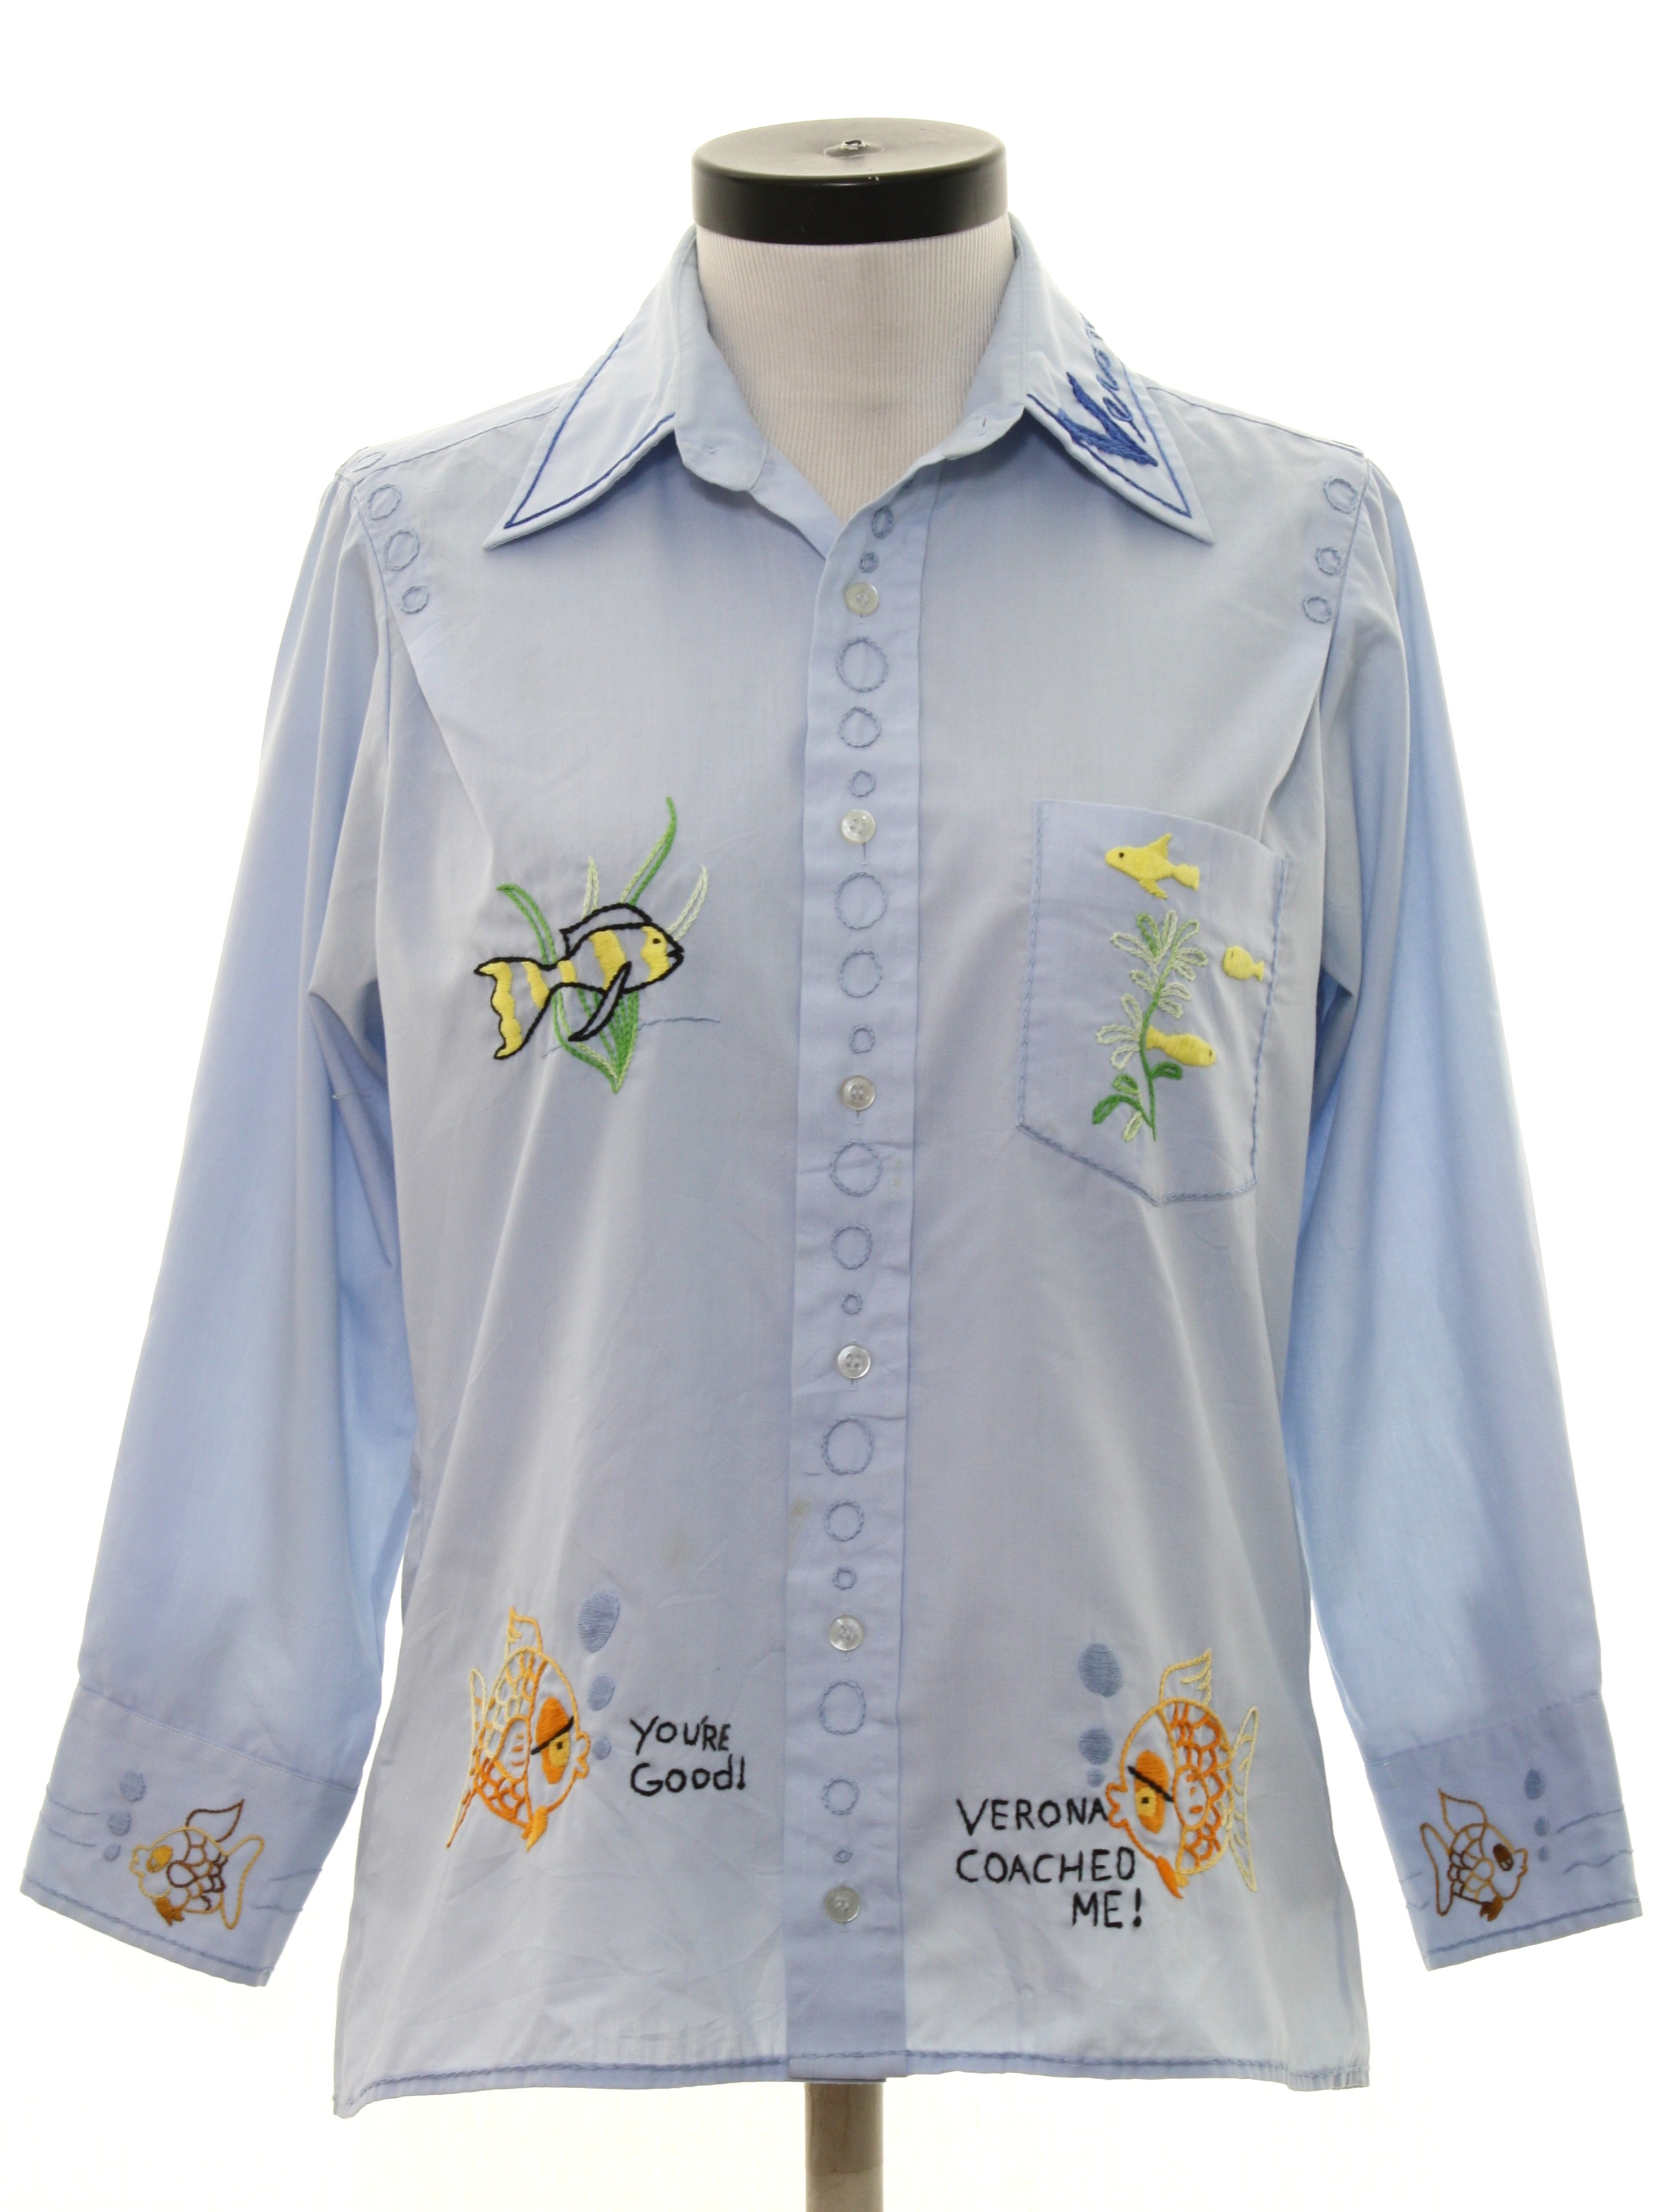 S vintage bristol hippie shirt late or early